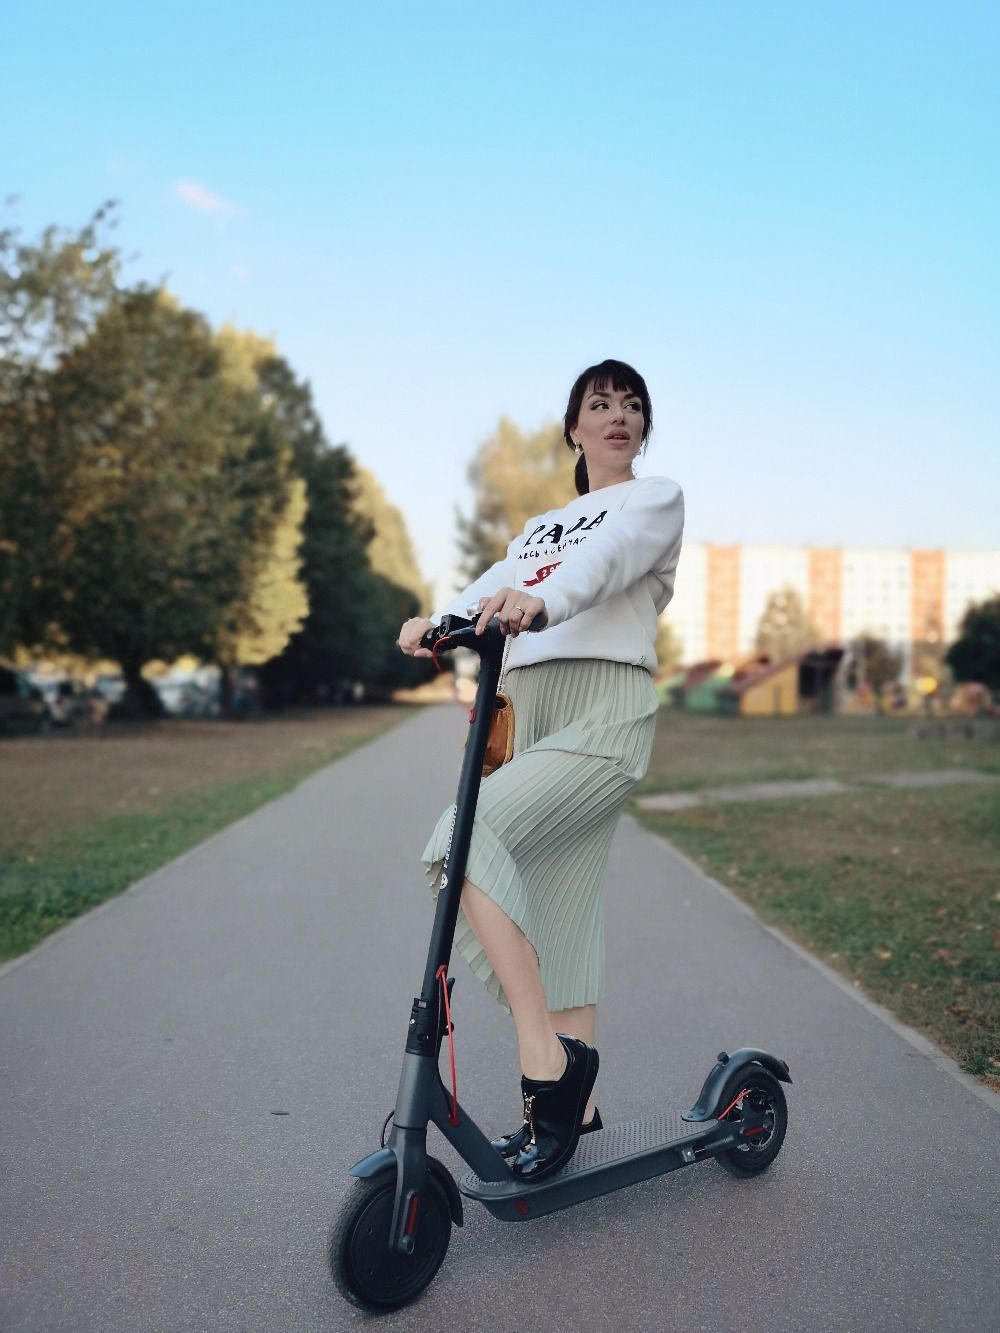 SUPERTEFF EW6 electric scooter gyro scooter with speed 30 km/h electric scooter foldable scooter with skateboard app